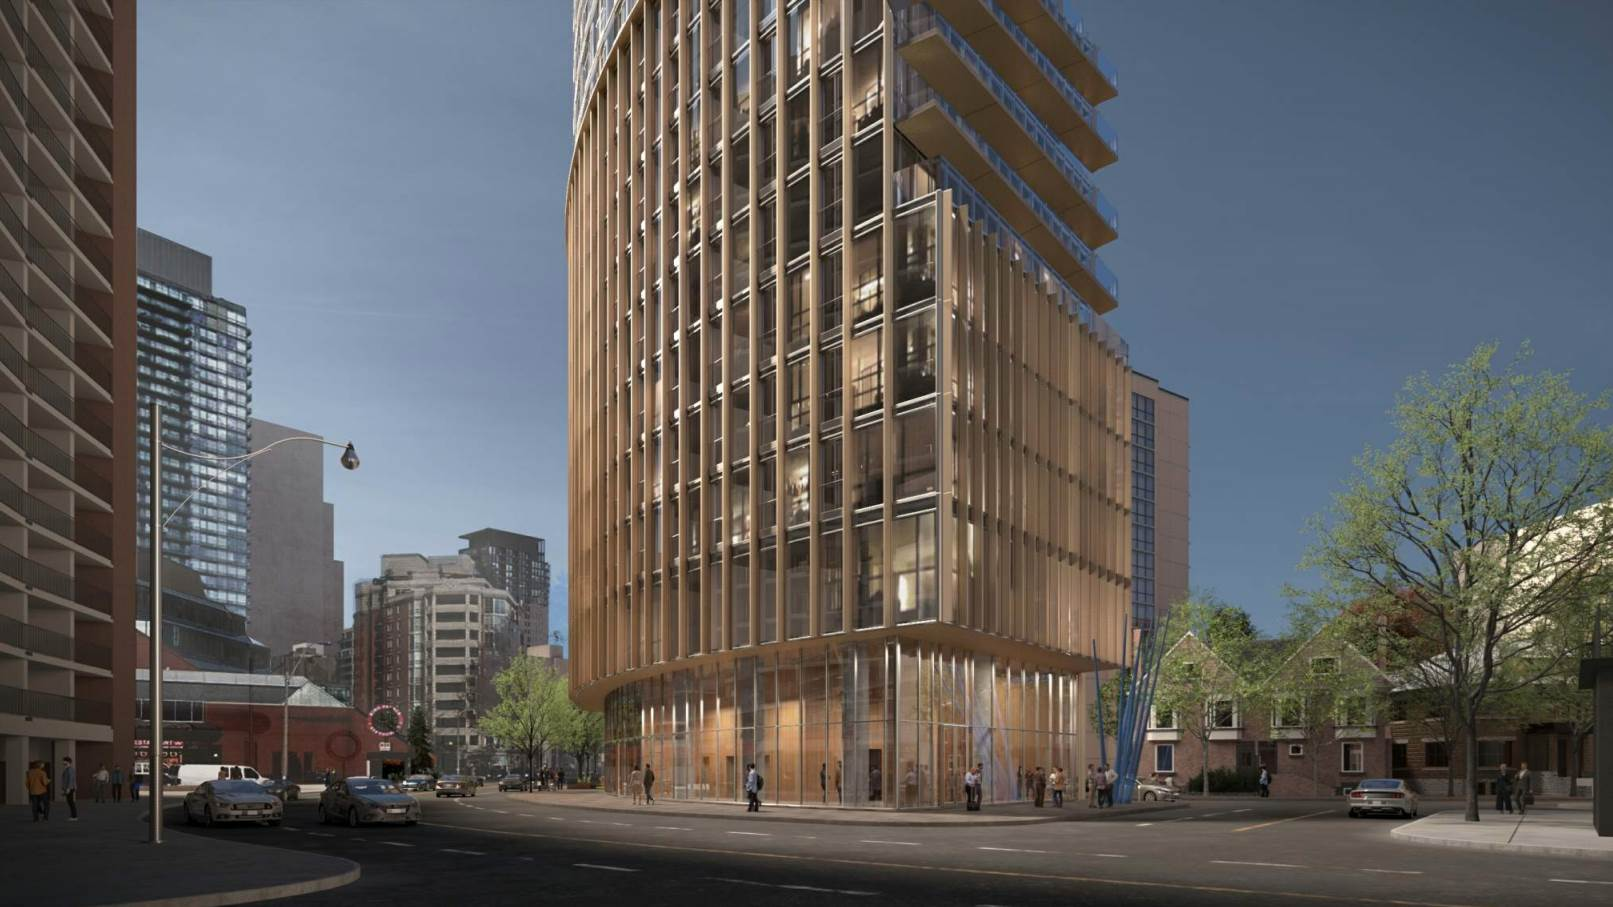 2020_12_04_04_19_20_717churchstreetcondos_rendering3-万能看图王